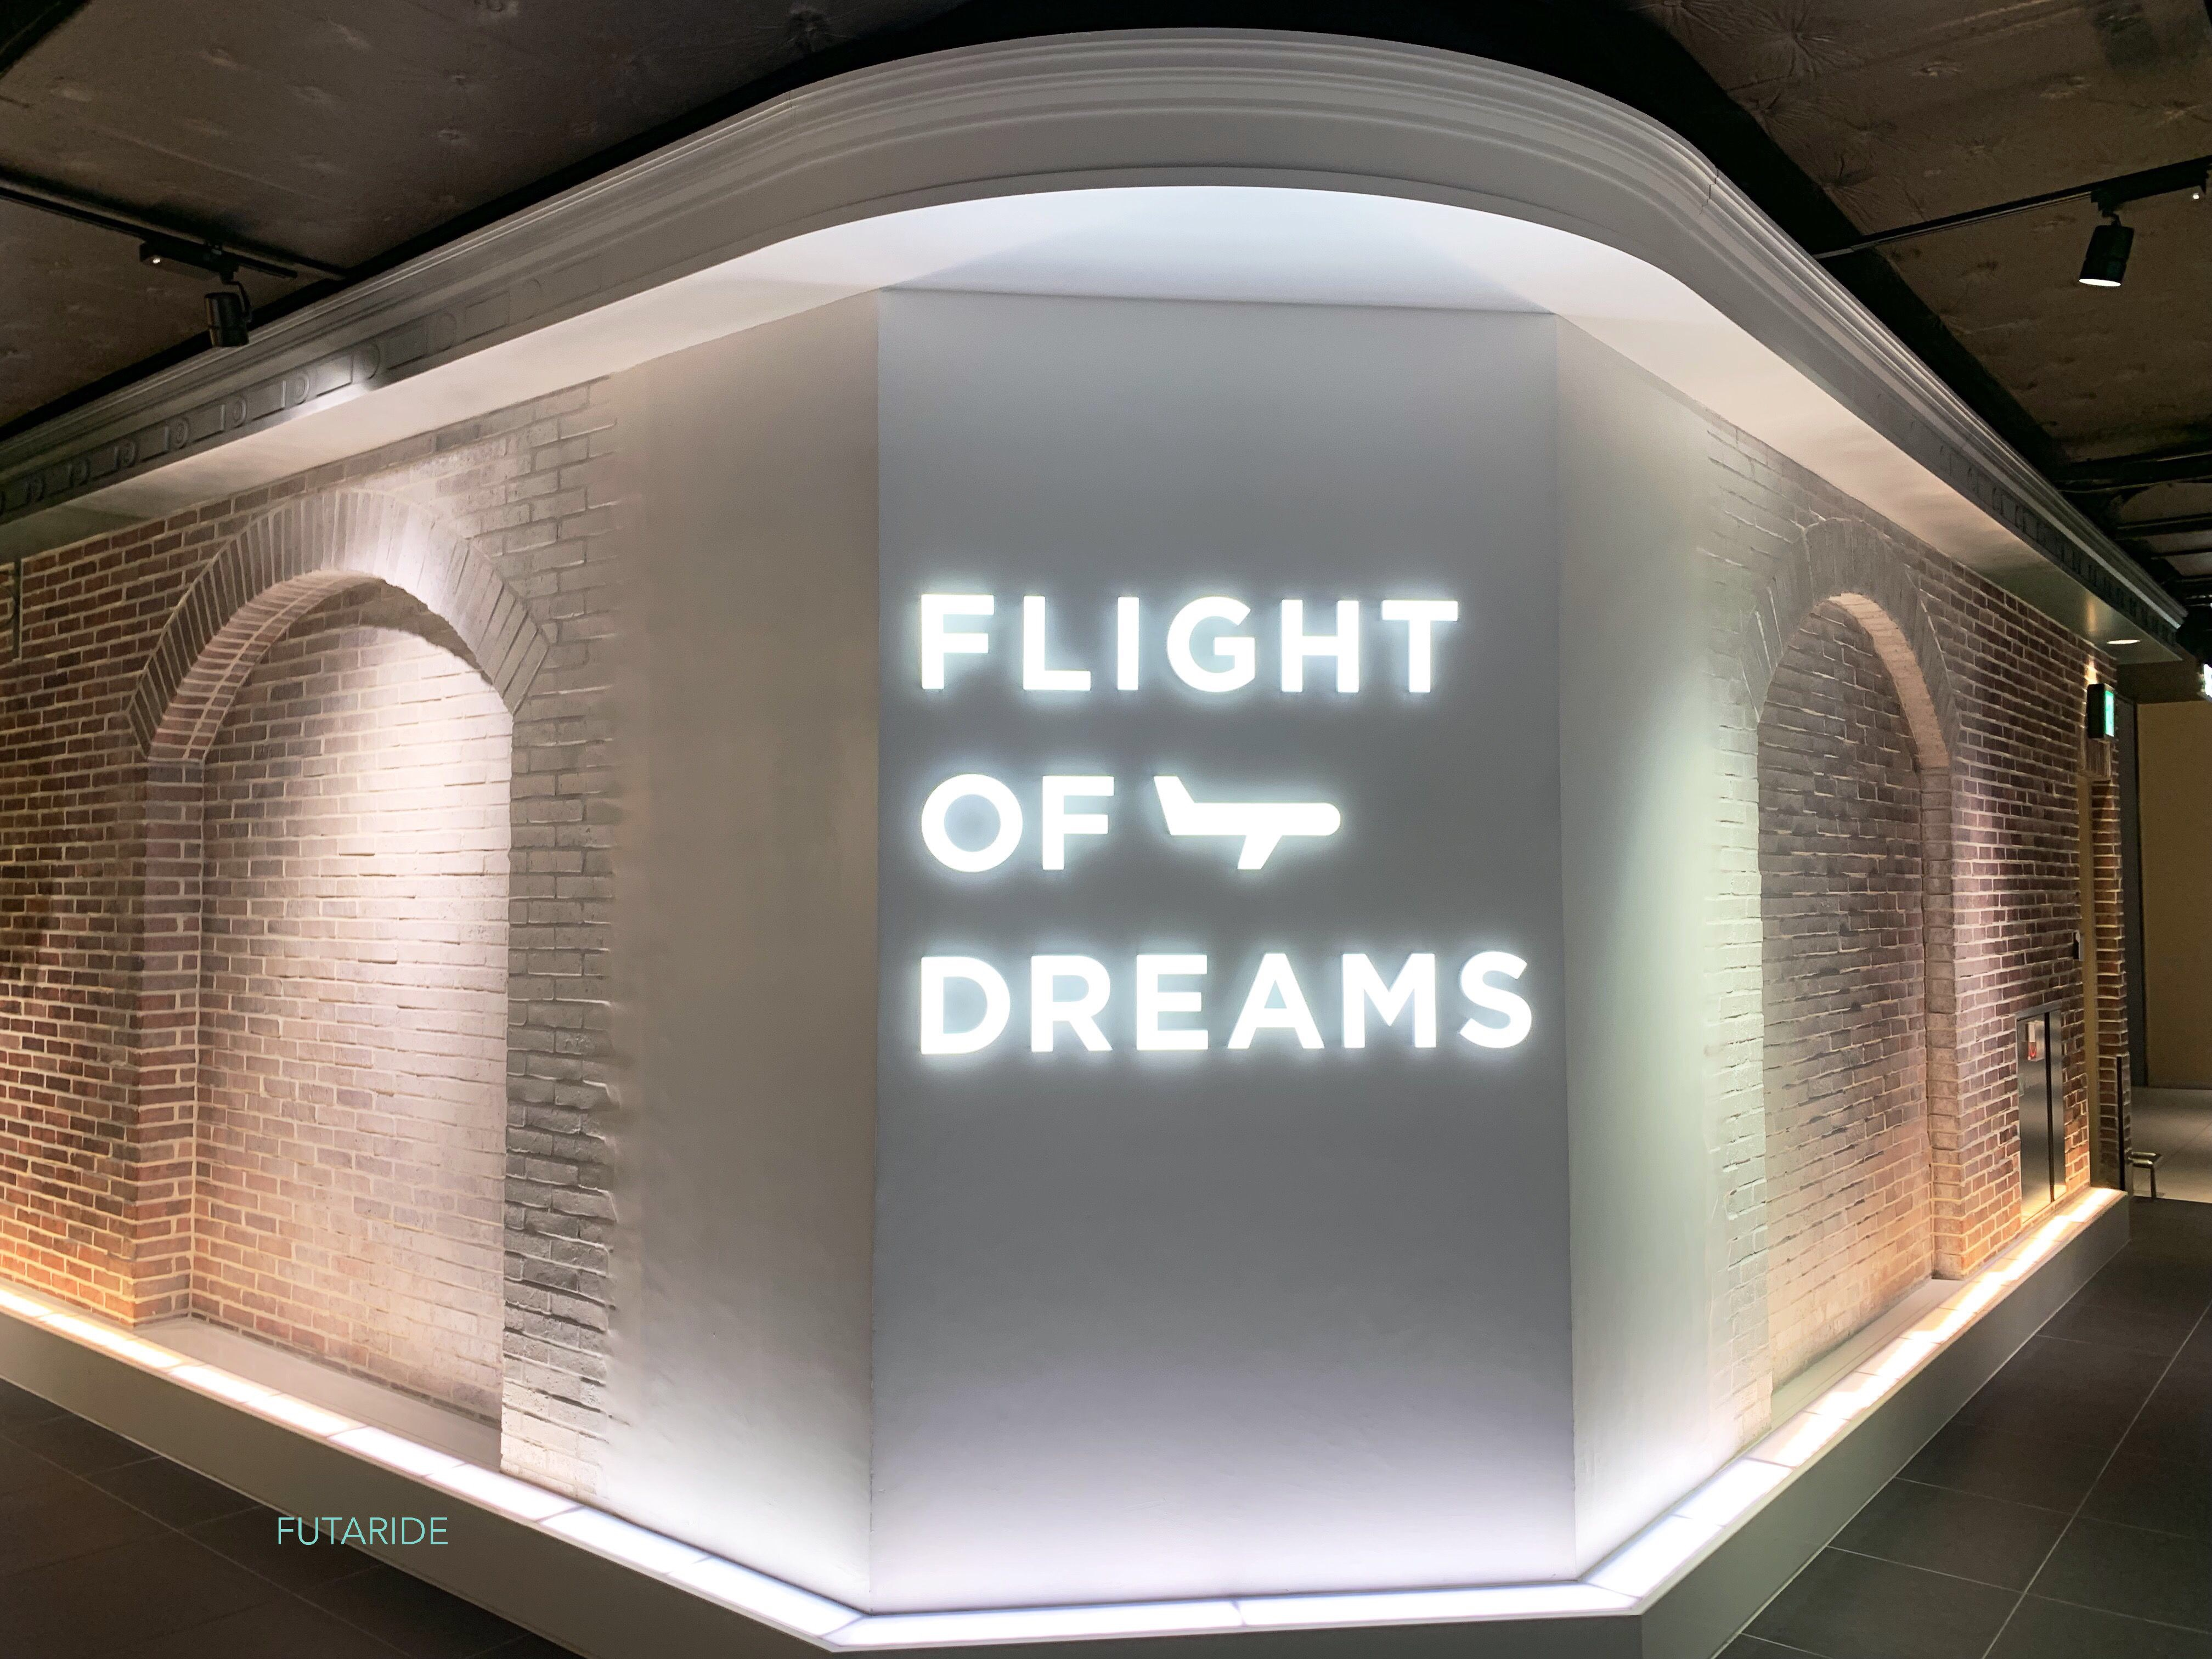 FLIGHT OF DREAMS